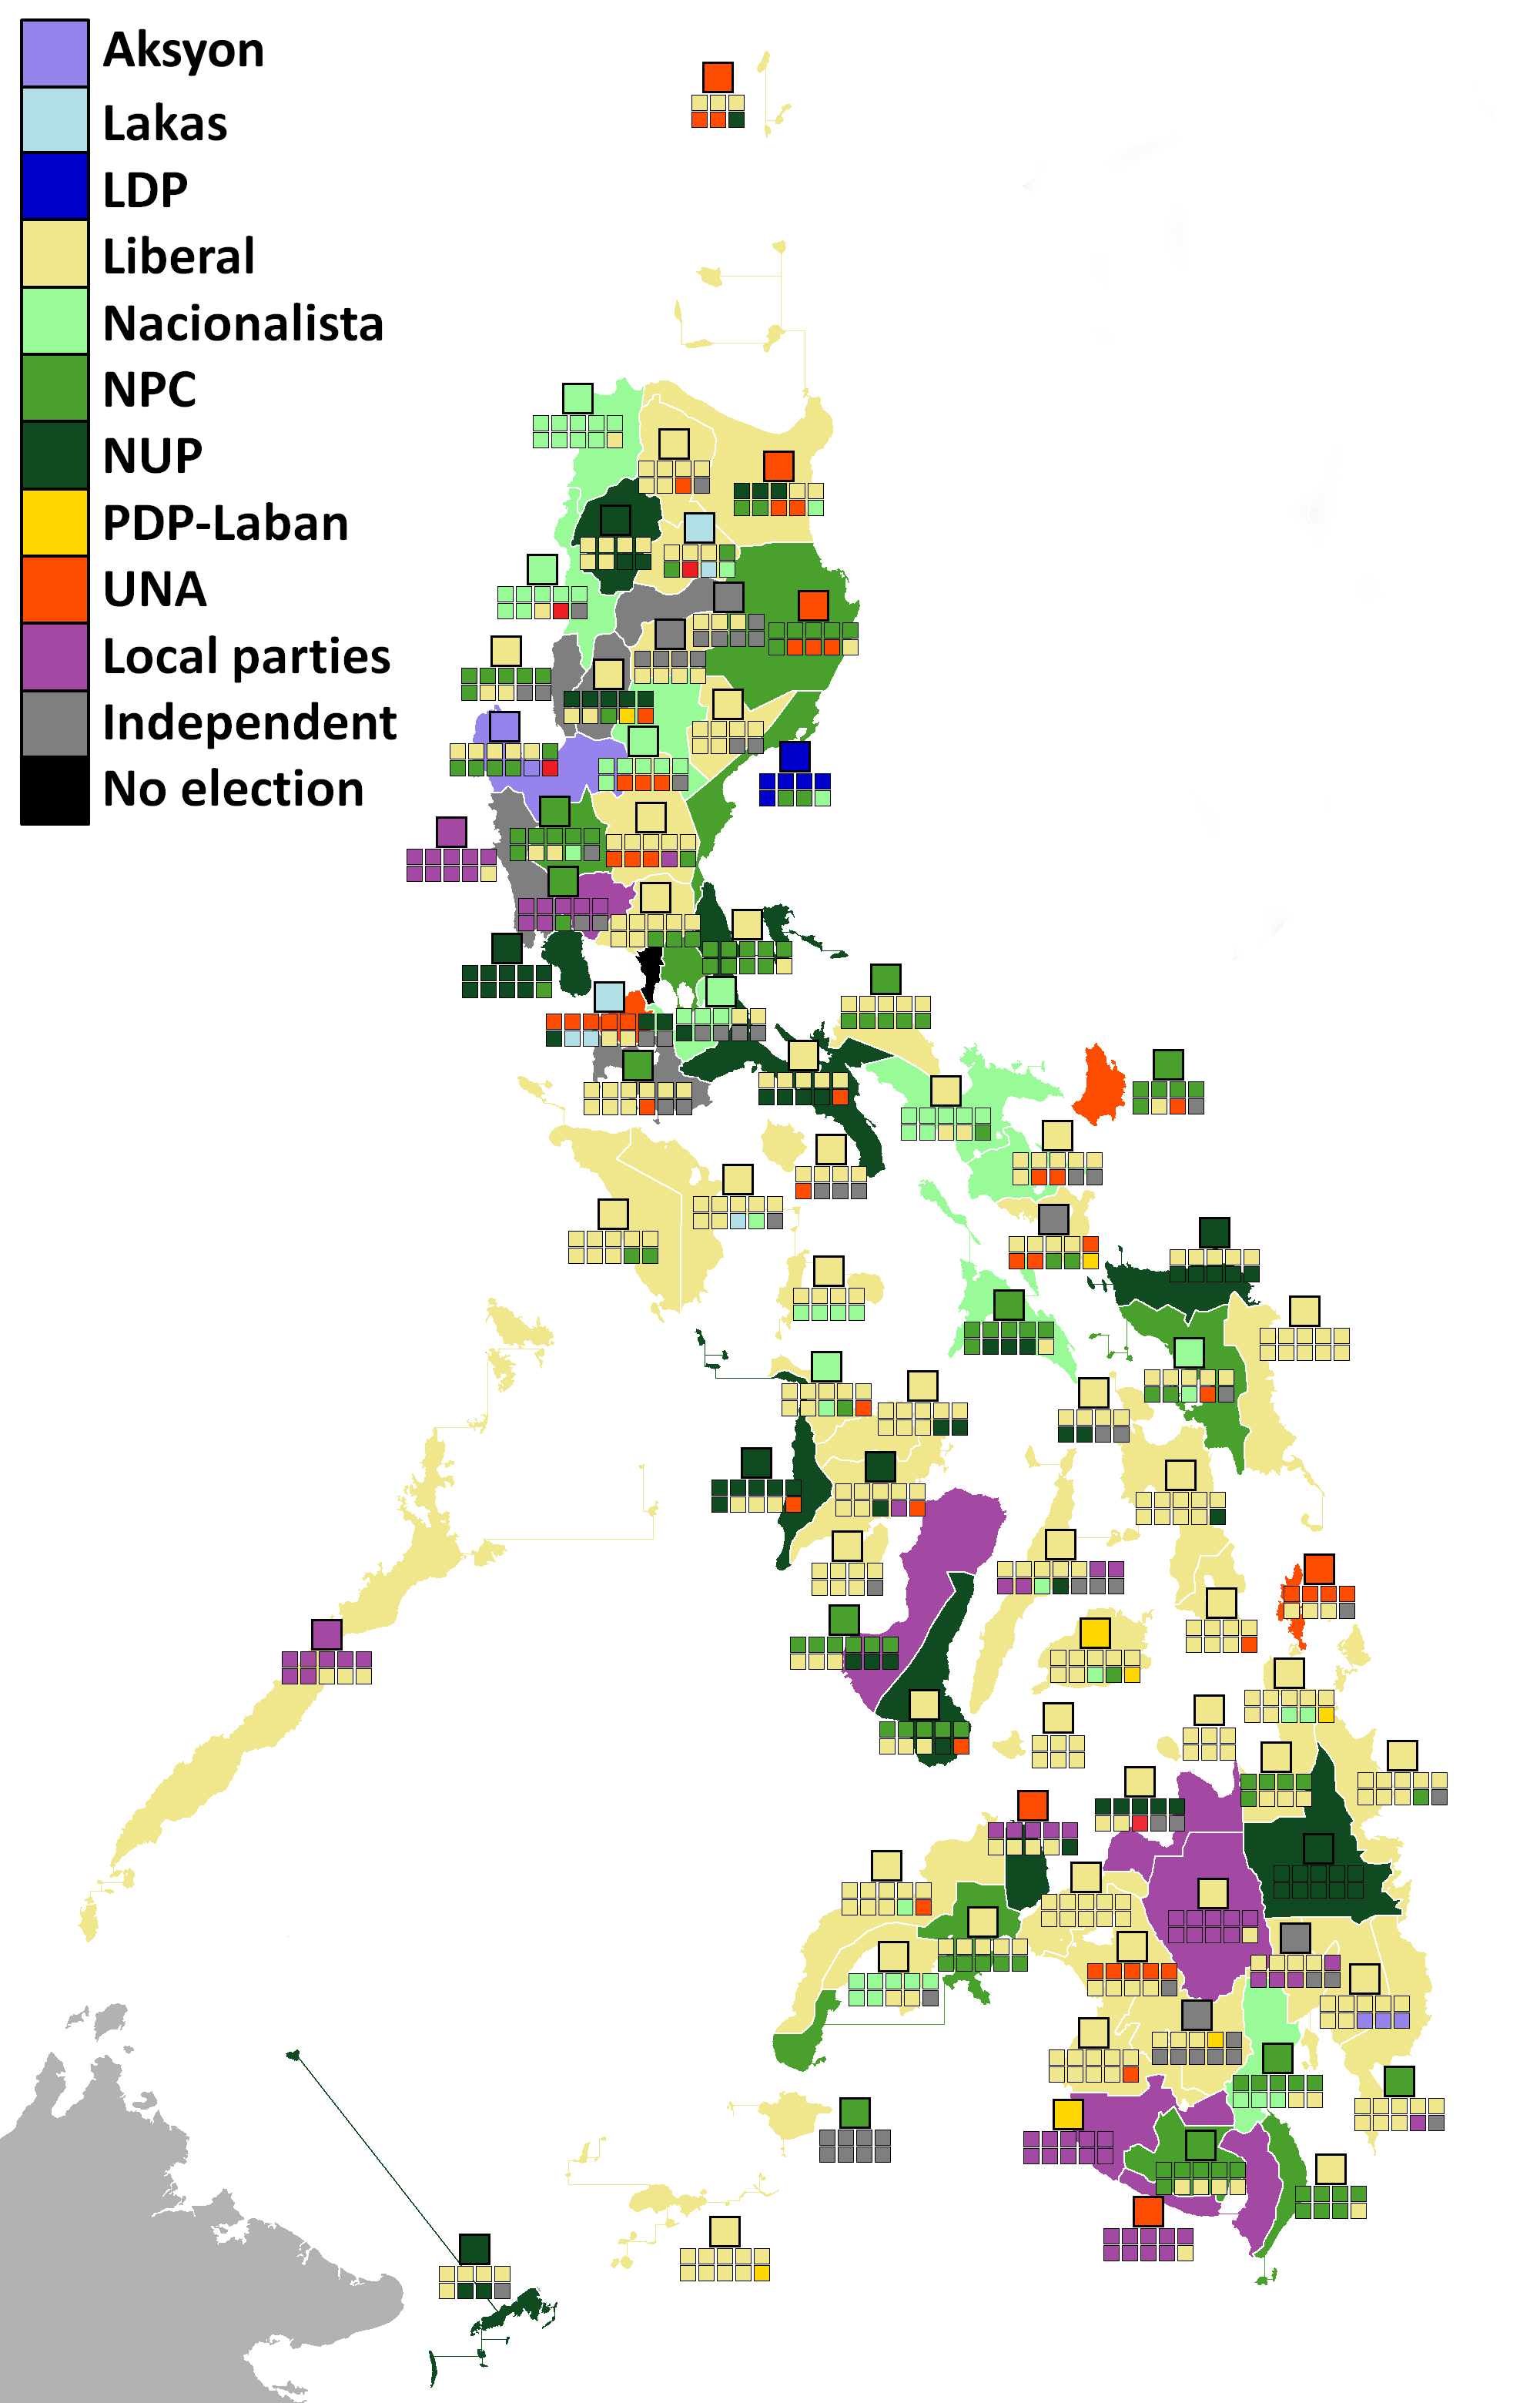 2016 Philippine local elections - Wikipedia